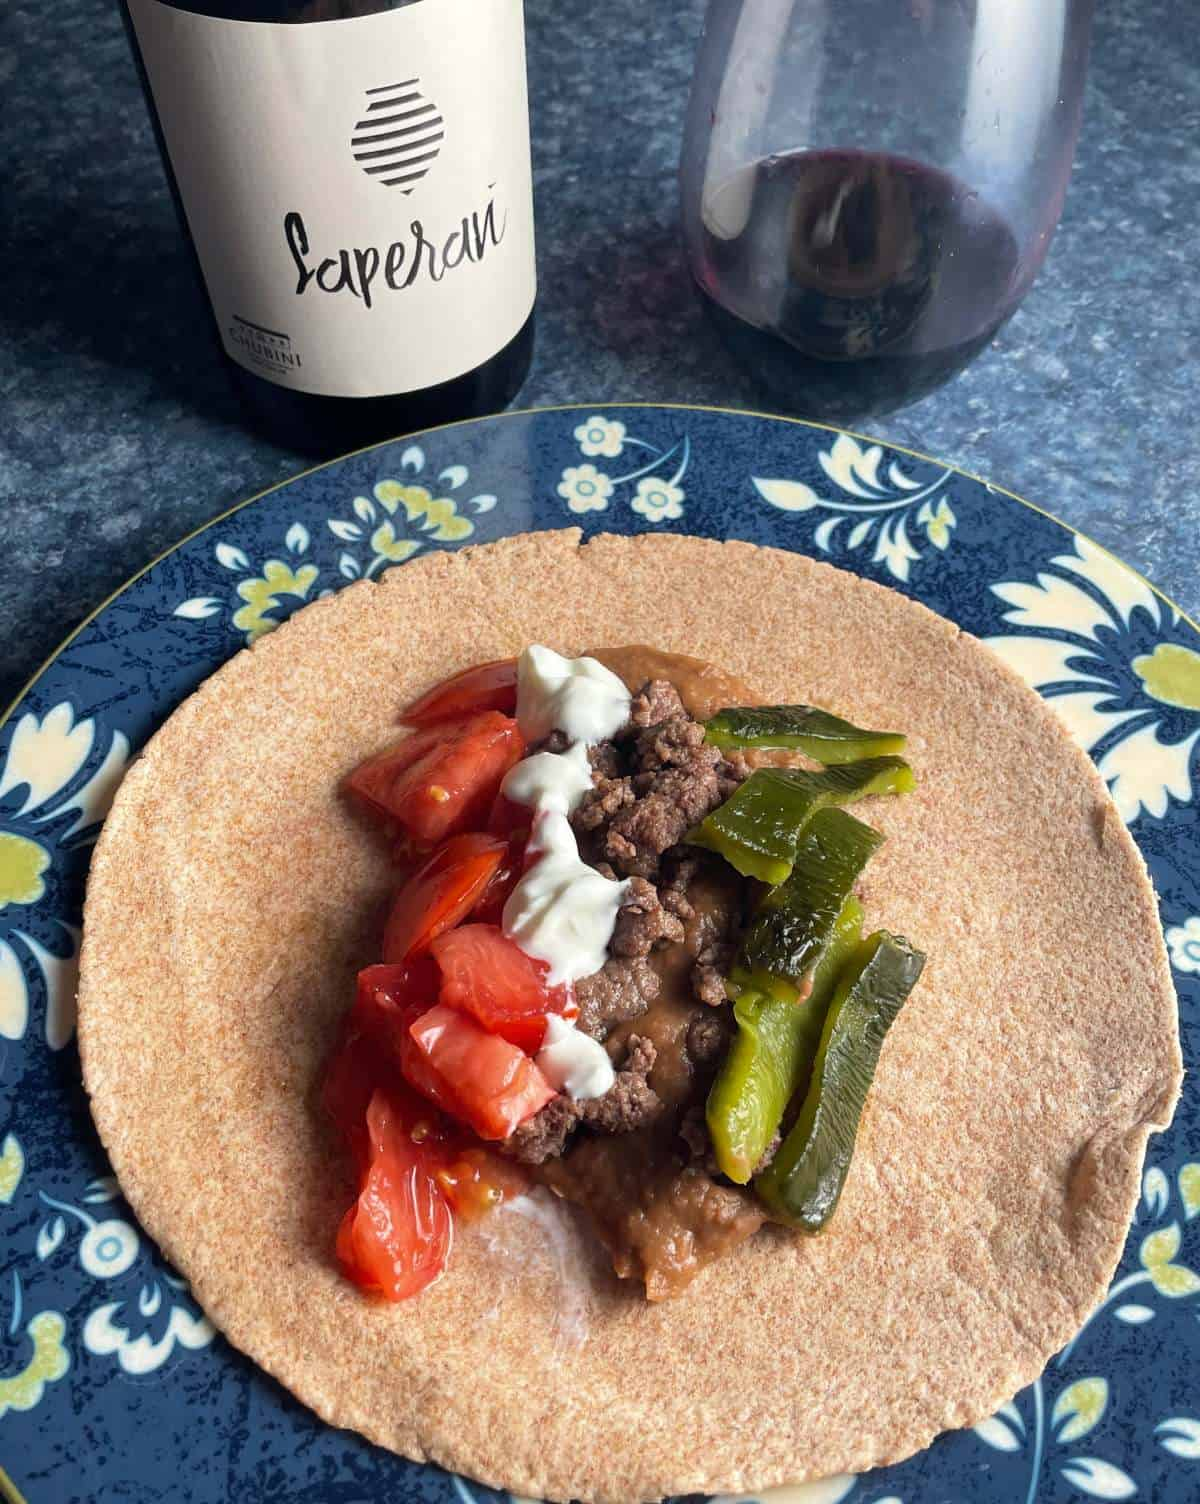 beef and bean tacos with peppers, sour cream and tomatoes, served on a plate with flowers on the edge. Red wine in the background.